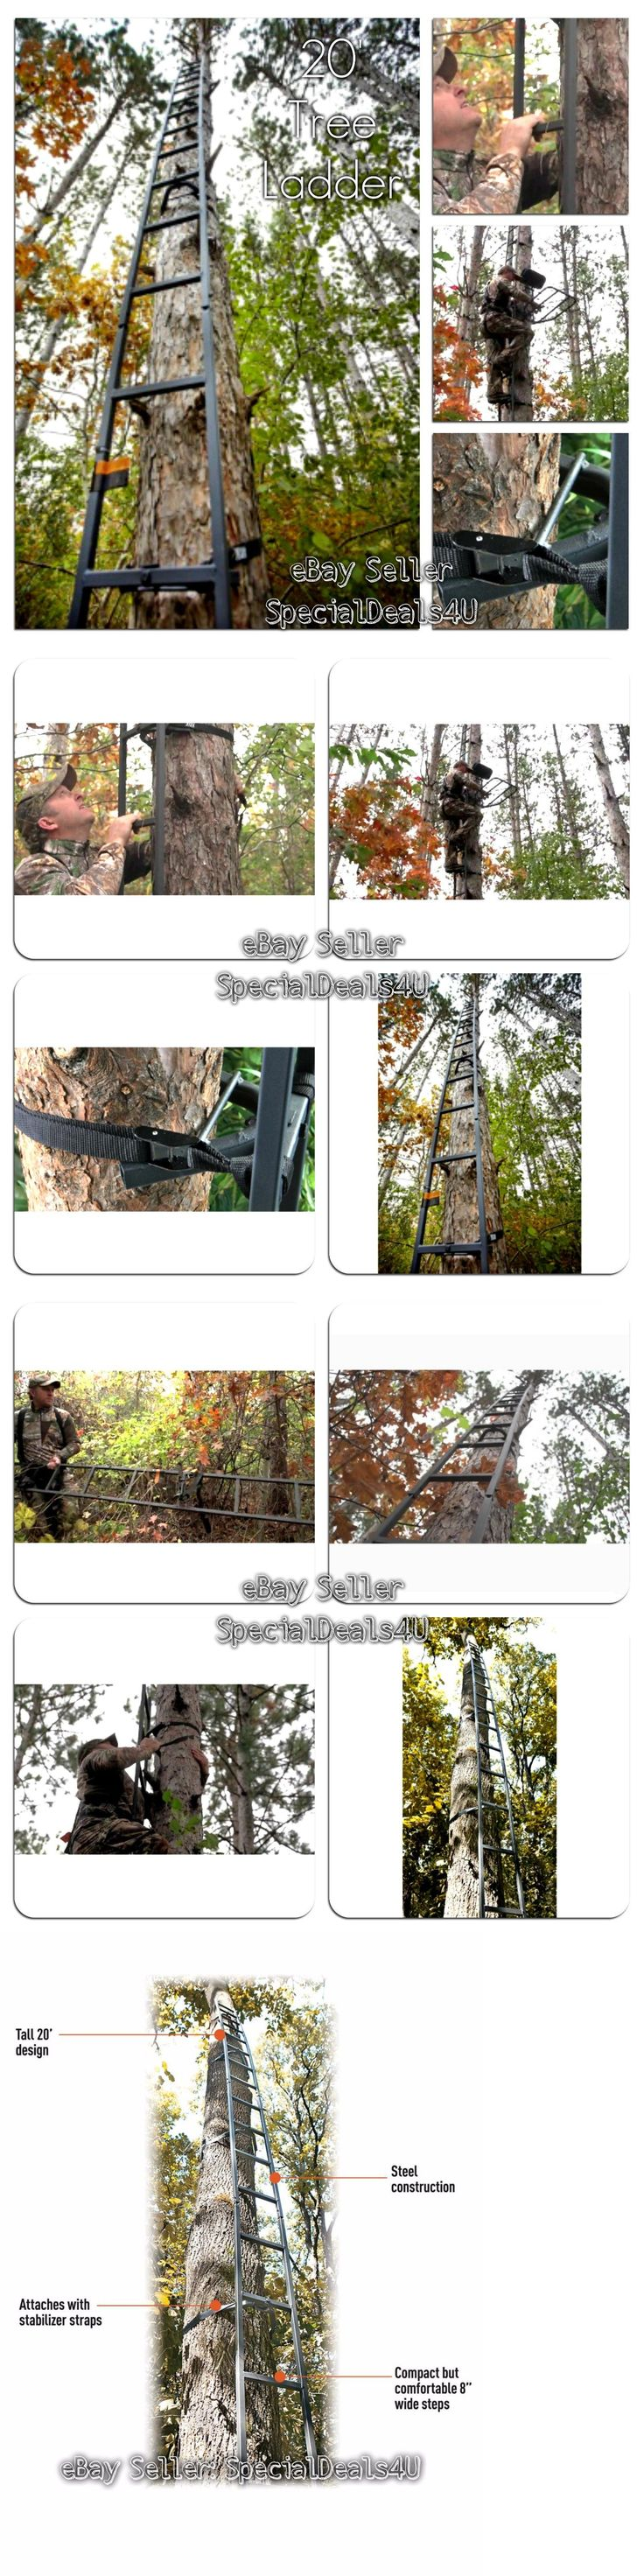 Tree Stands 52508: Deer Hunting Ladder Tree Stand 20Ft Sniper Rifle Bow Treestand Man Climbing New BUY IT NOW ONLY: $62.95